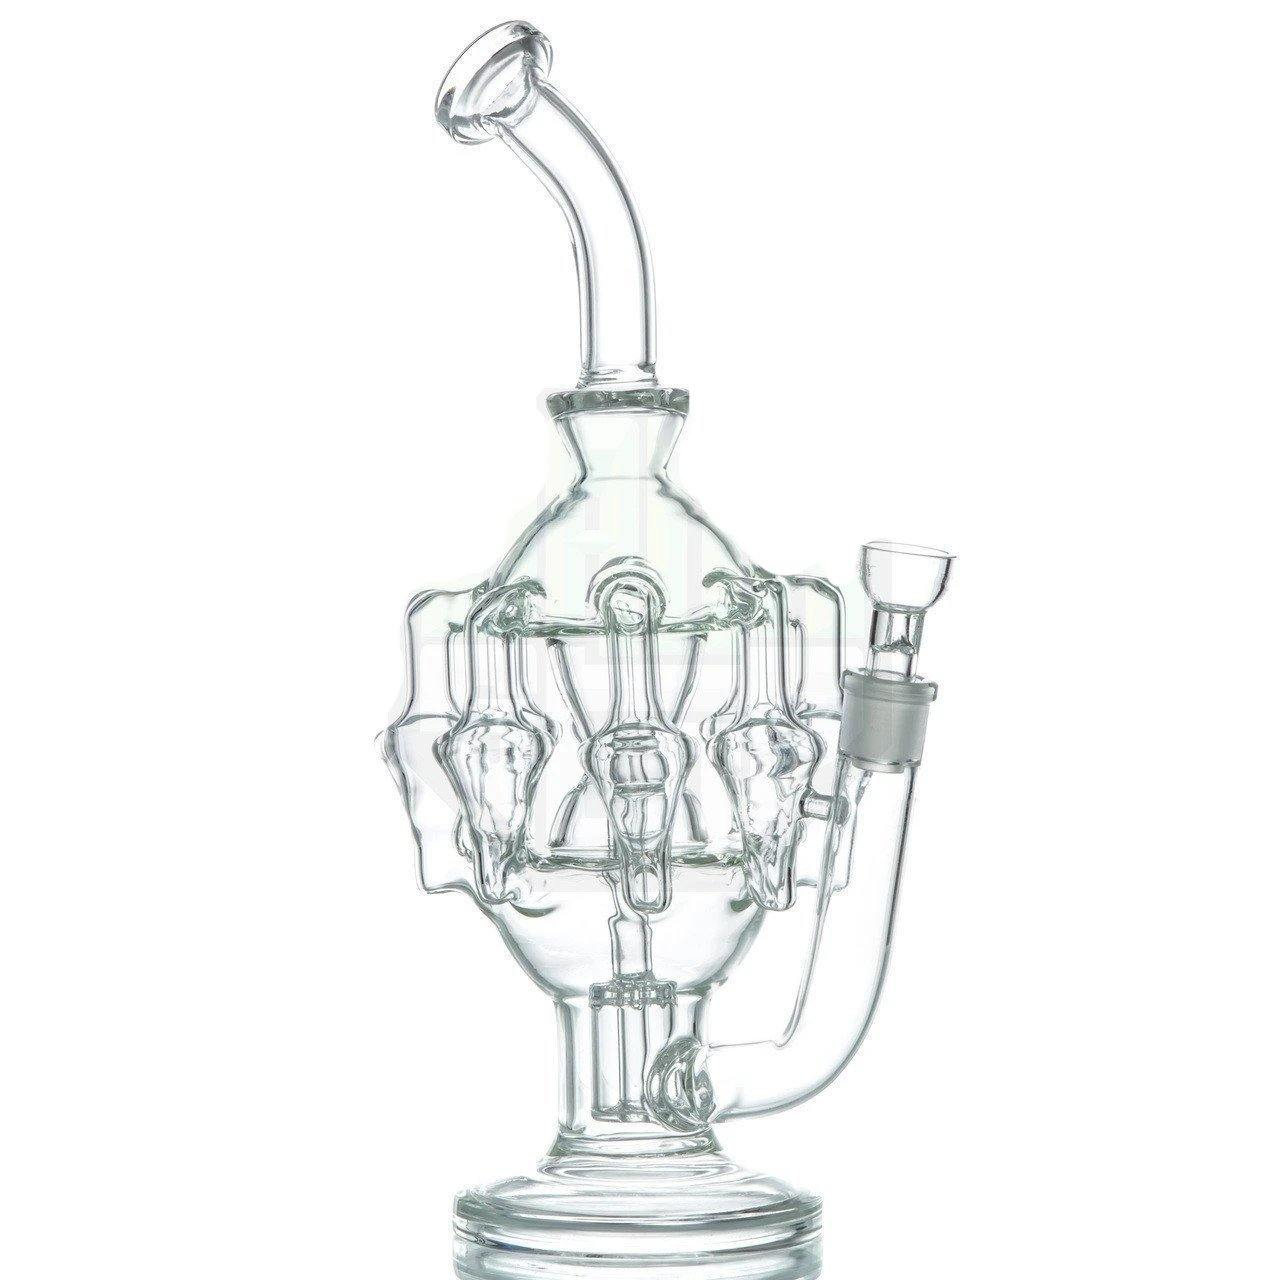 Eight-Arm Chandelier Recycler Bong | The710Source.com